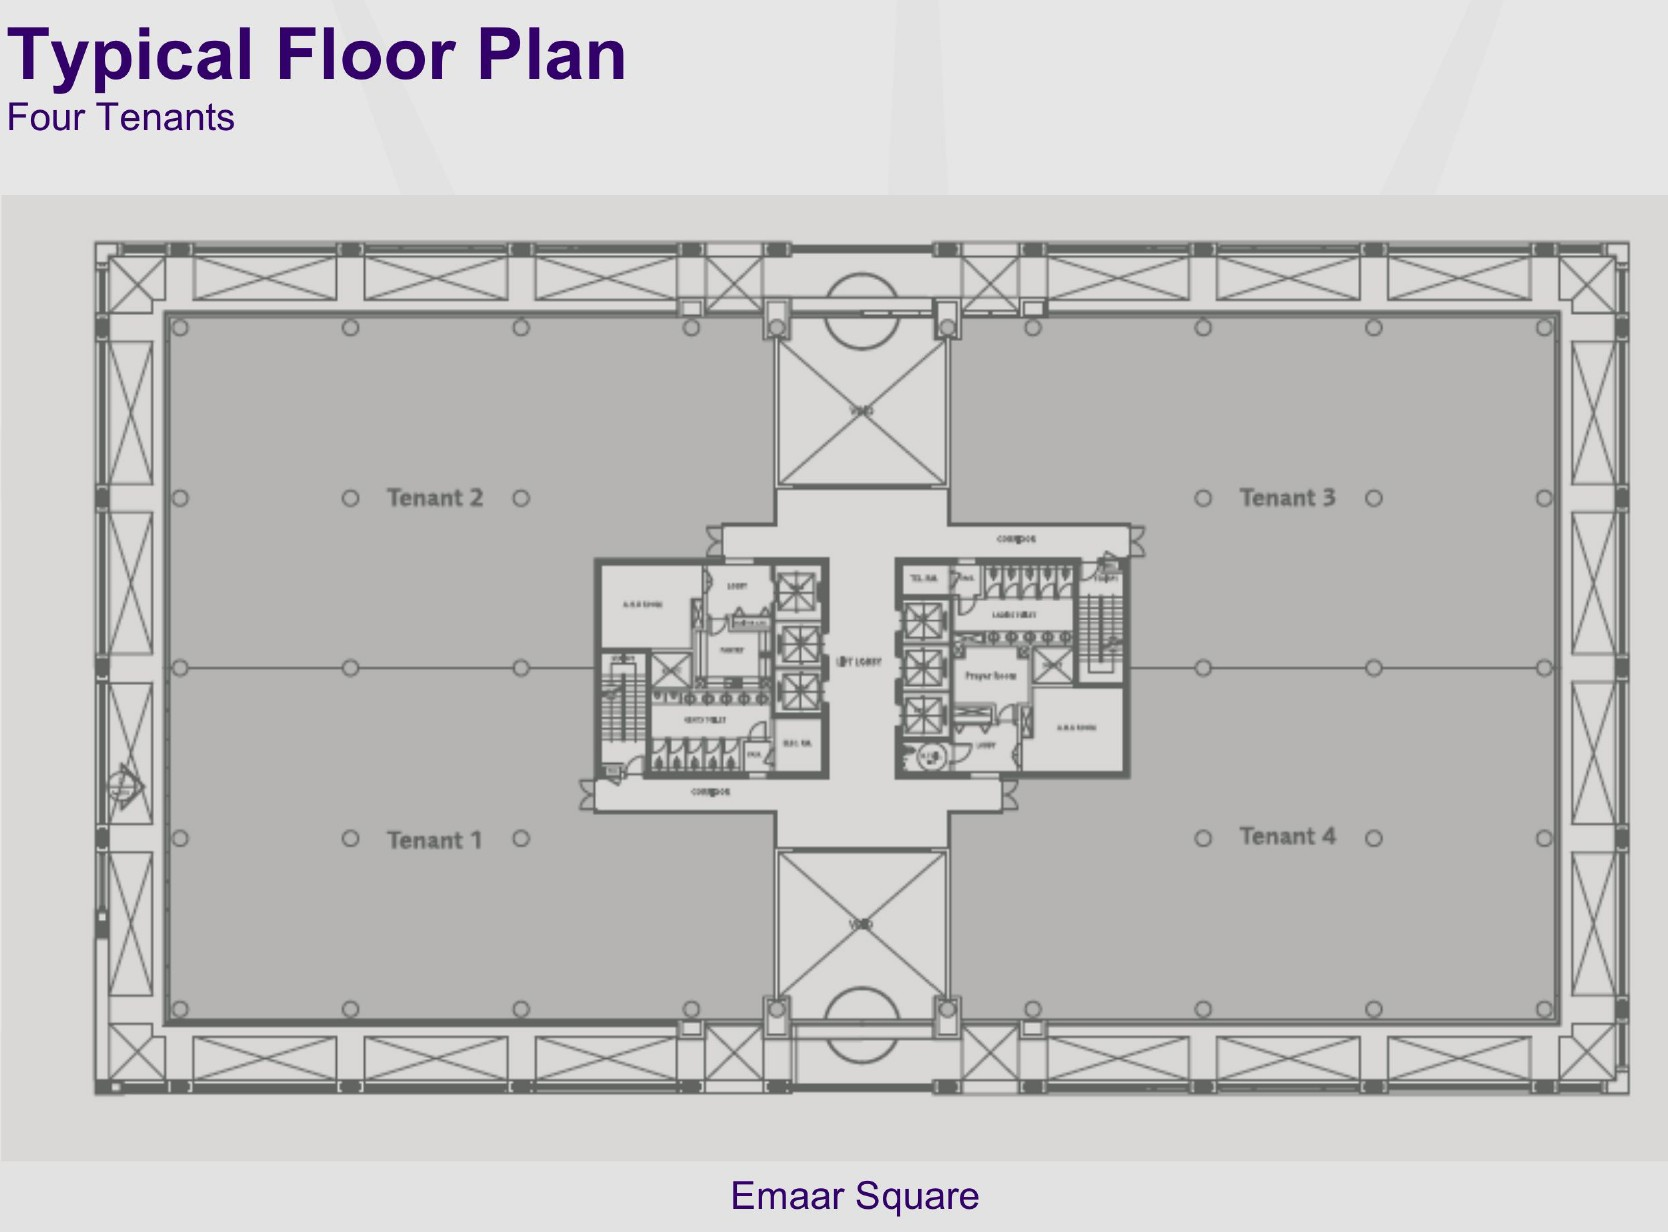 Downtown burj khalifa dubai floor plans for Typical office floor plan